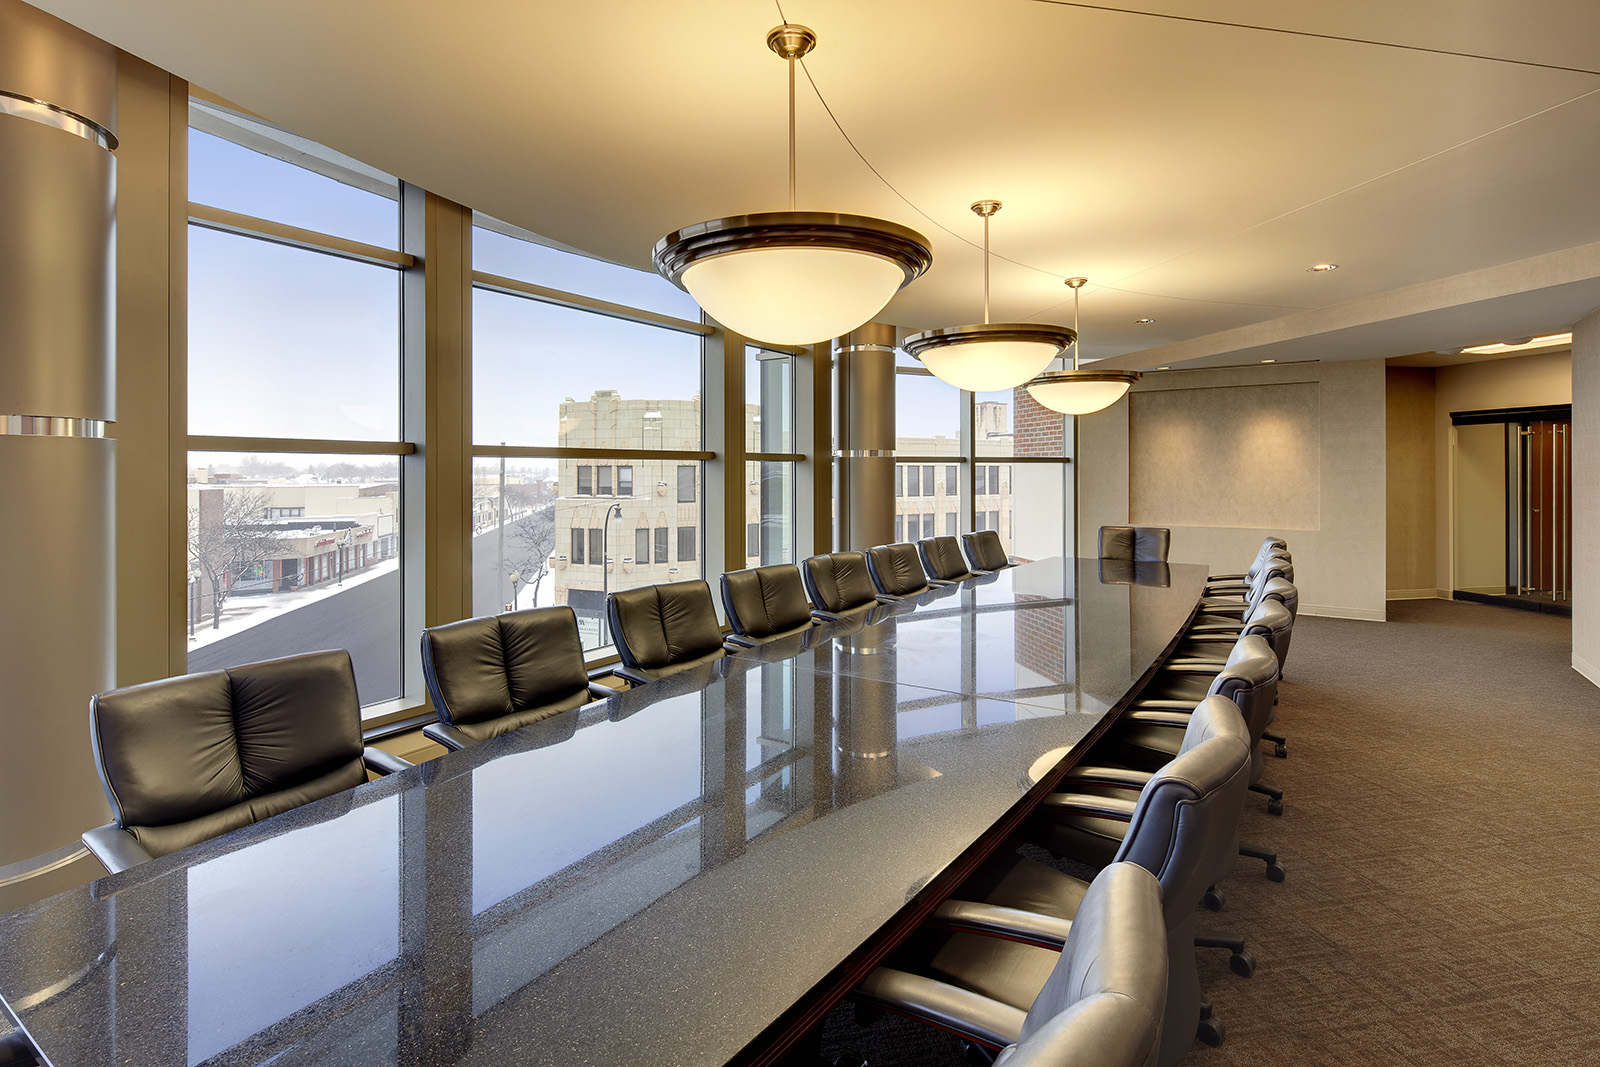 dearborn-town-center-conference-room